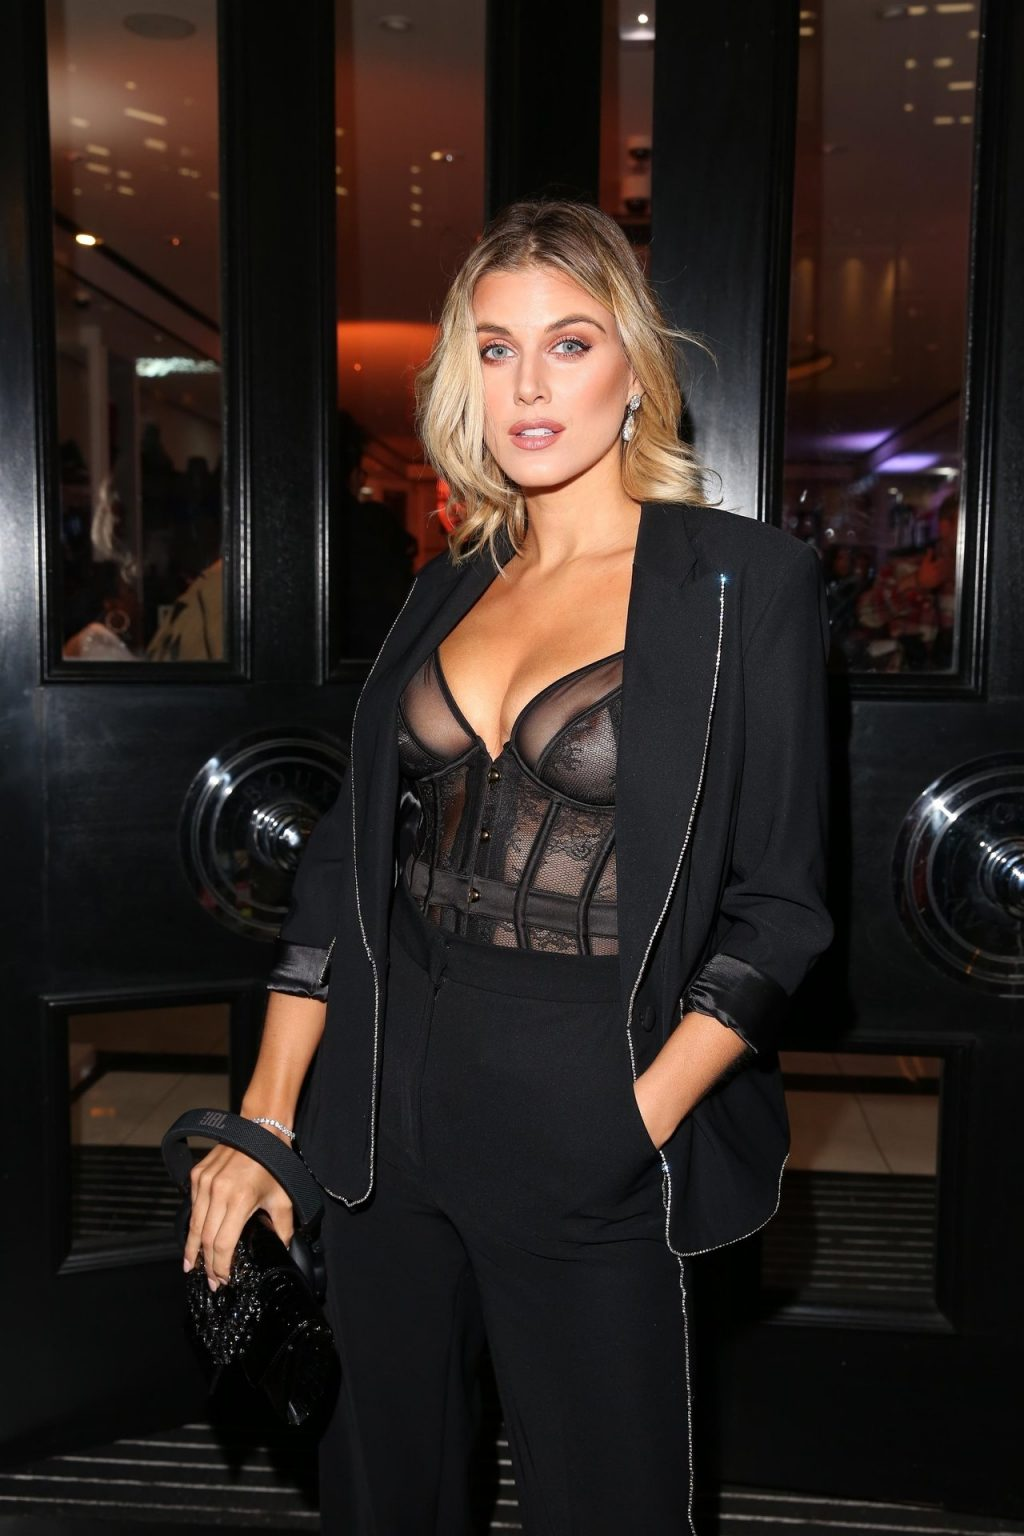 Ashley James See Through (115 Photos)